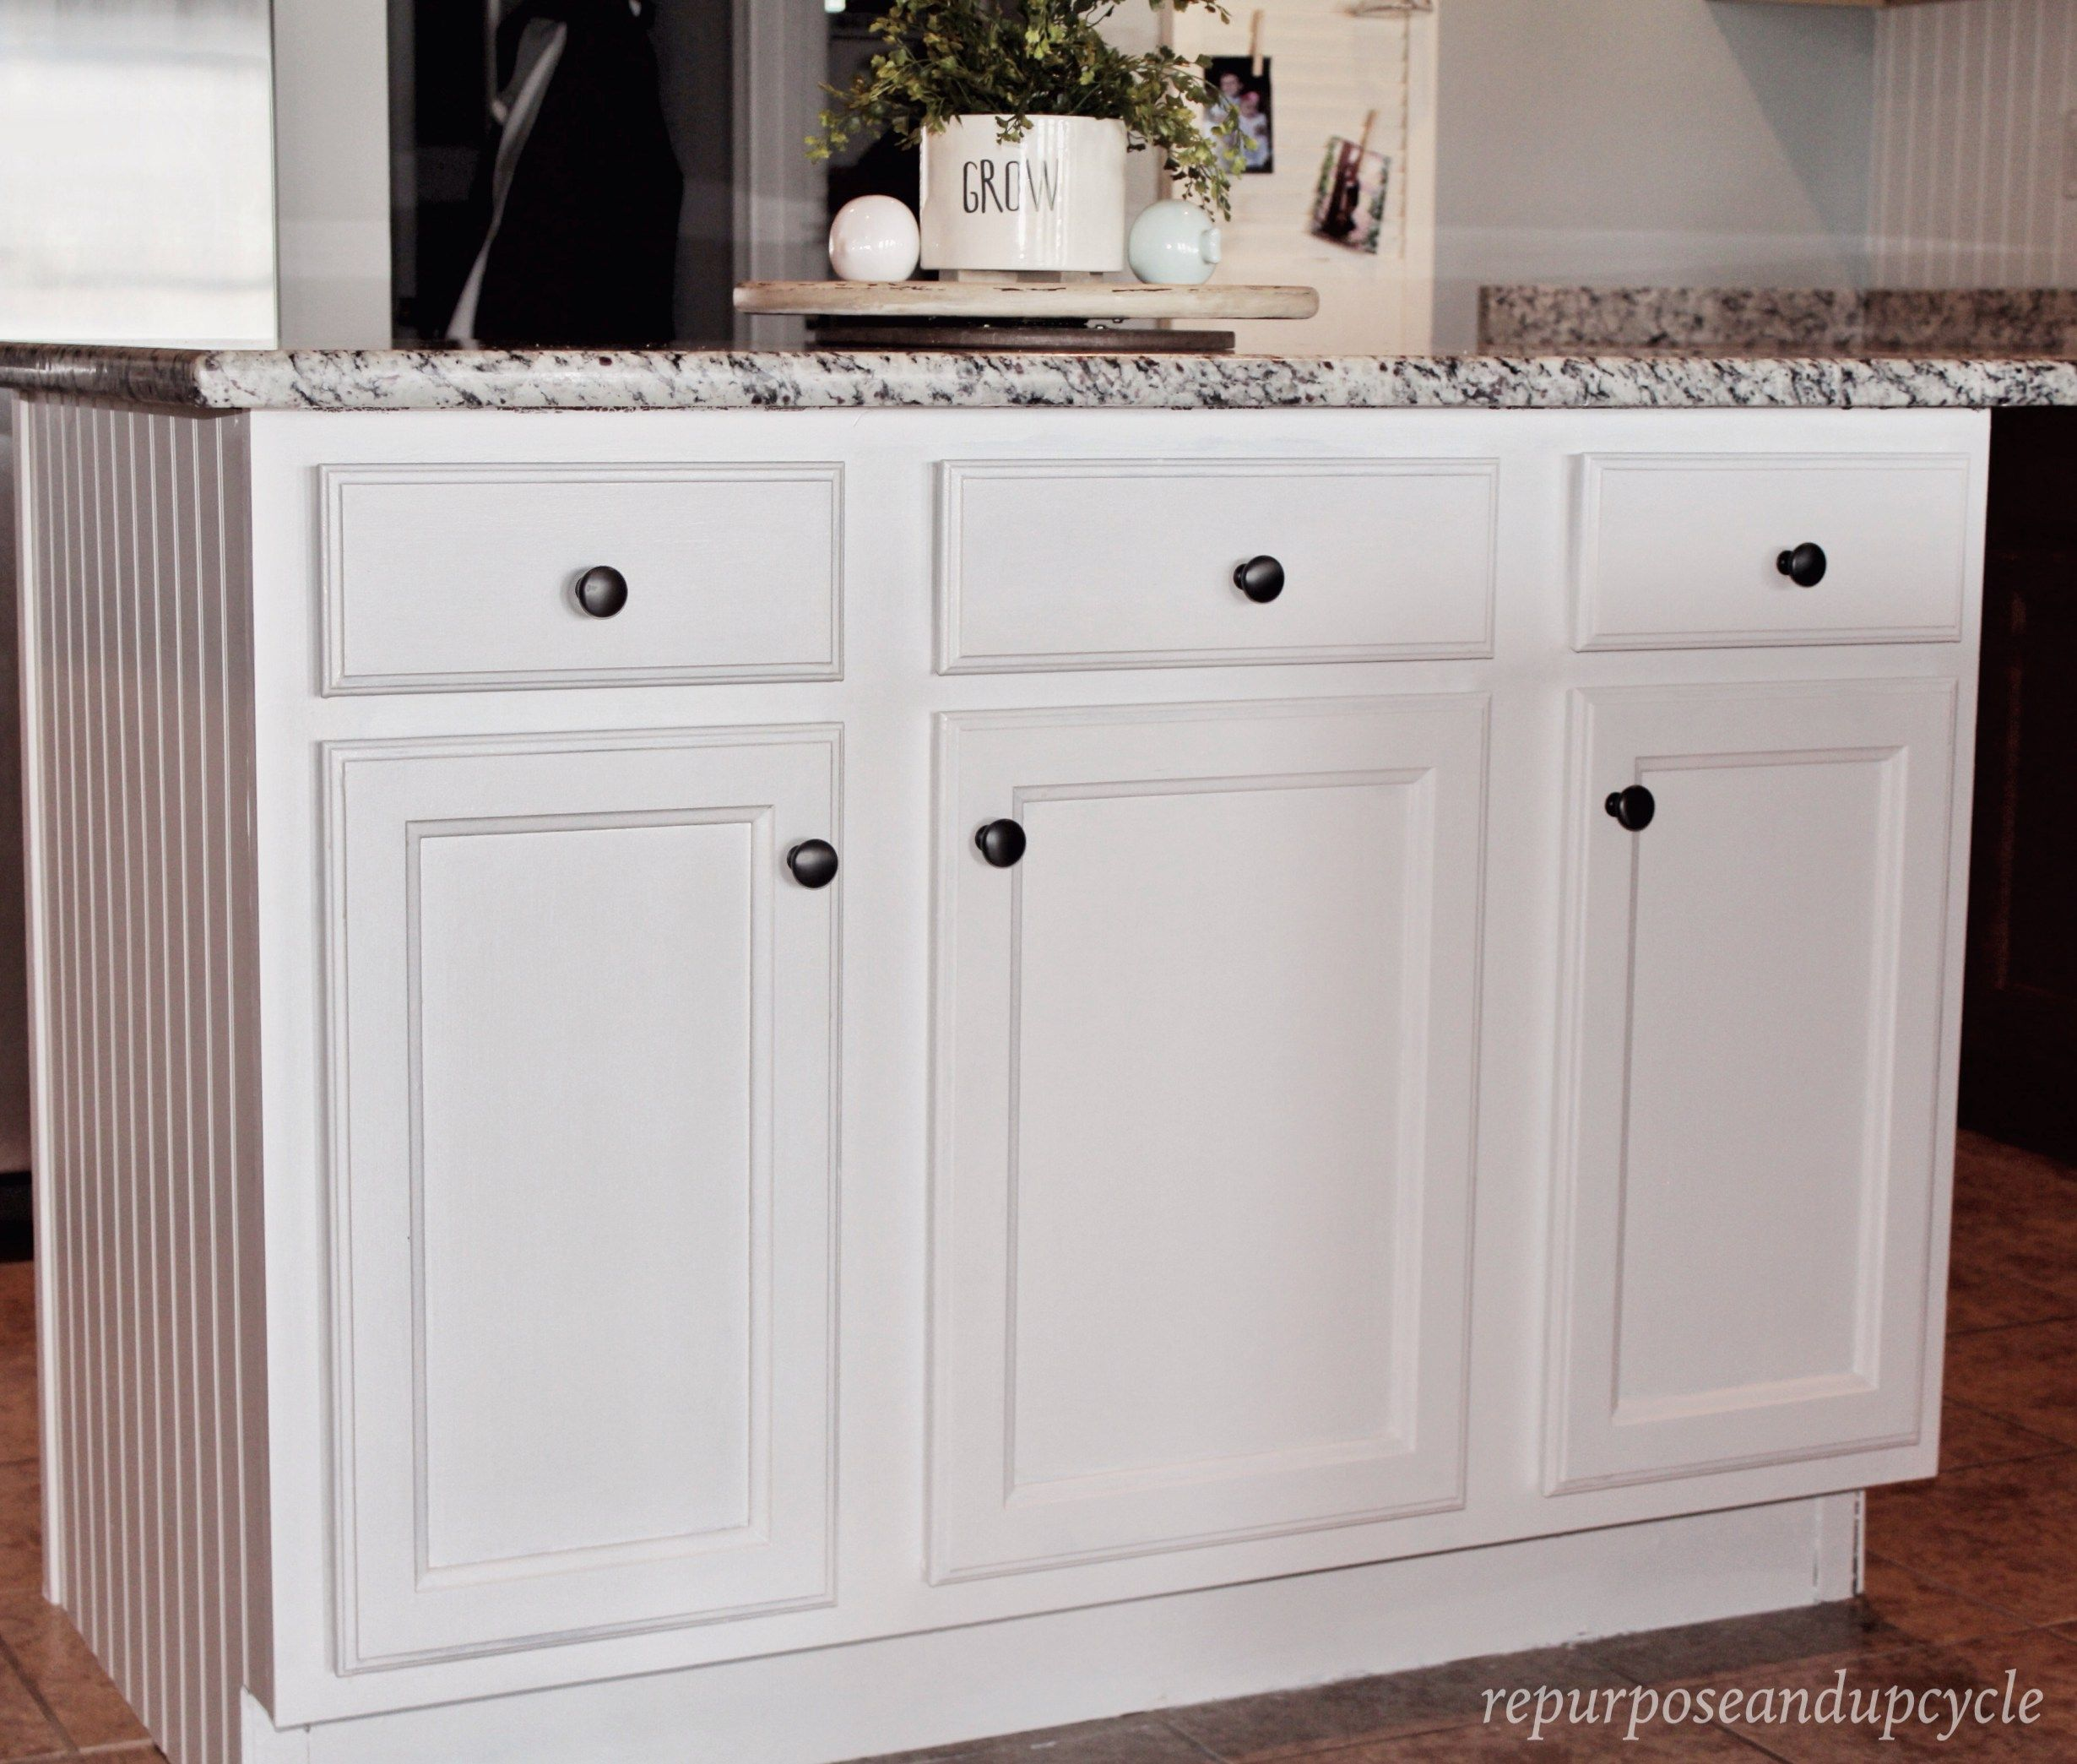 How To Paint Bathroom Laminate Cabinets: Painting Laminate Cabinets With No Prep Work